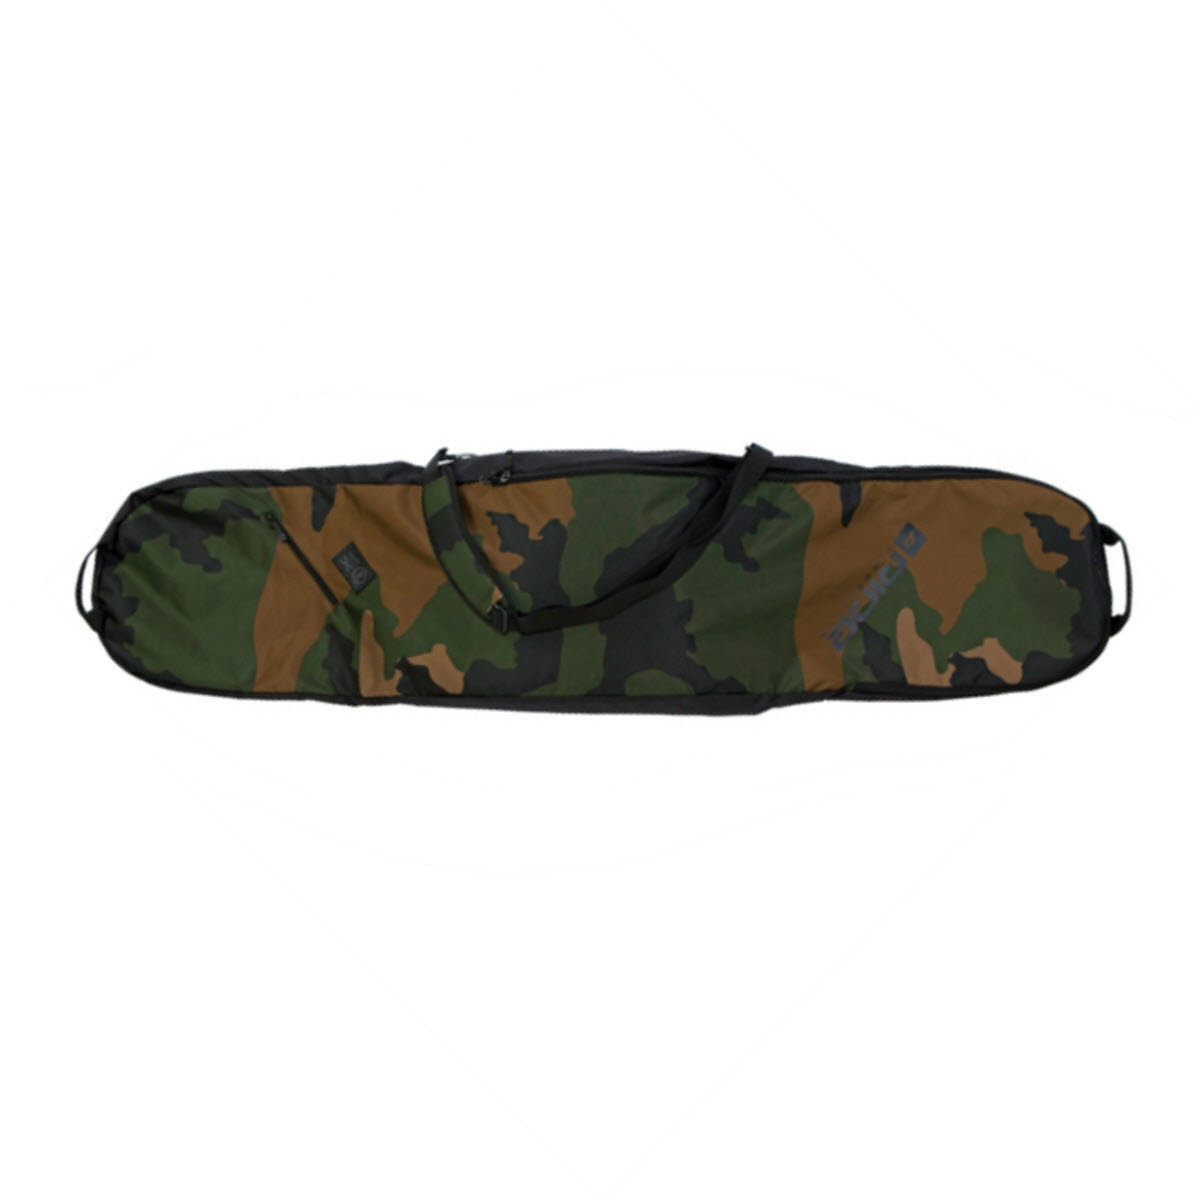 Ride Blackened Snowboard Bag 2016 Camo 172cm review